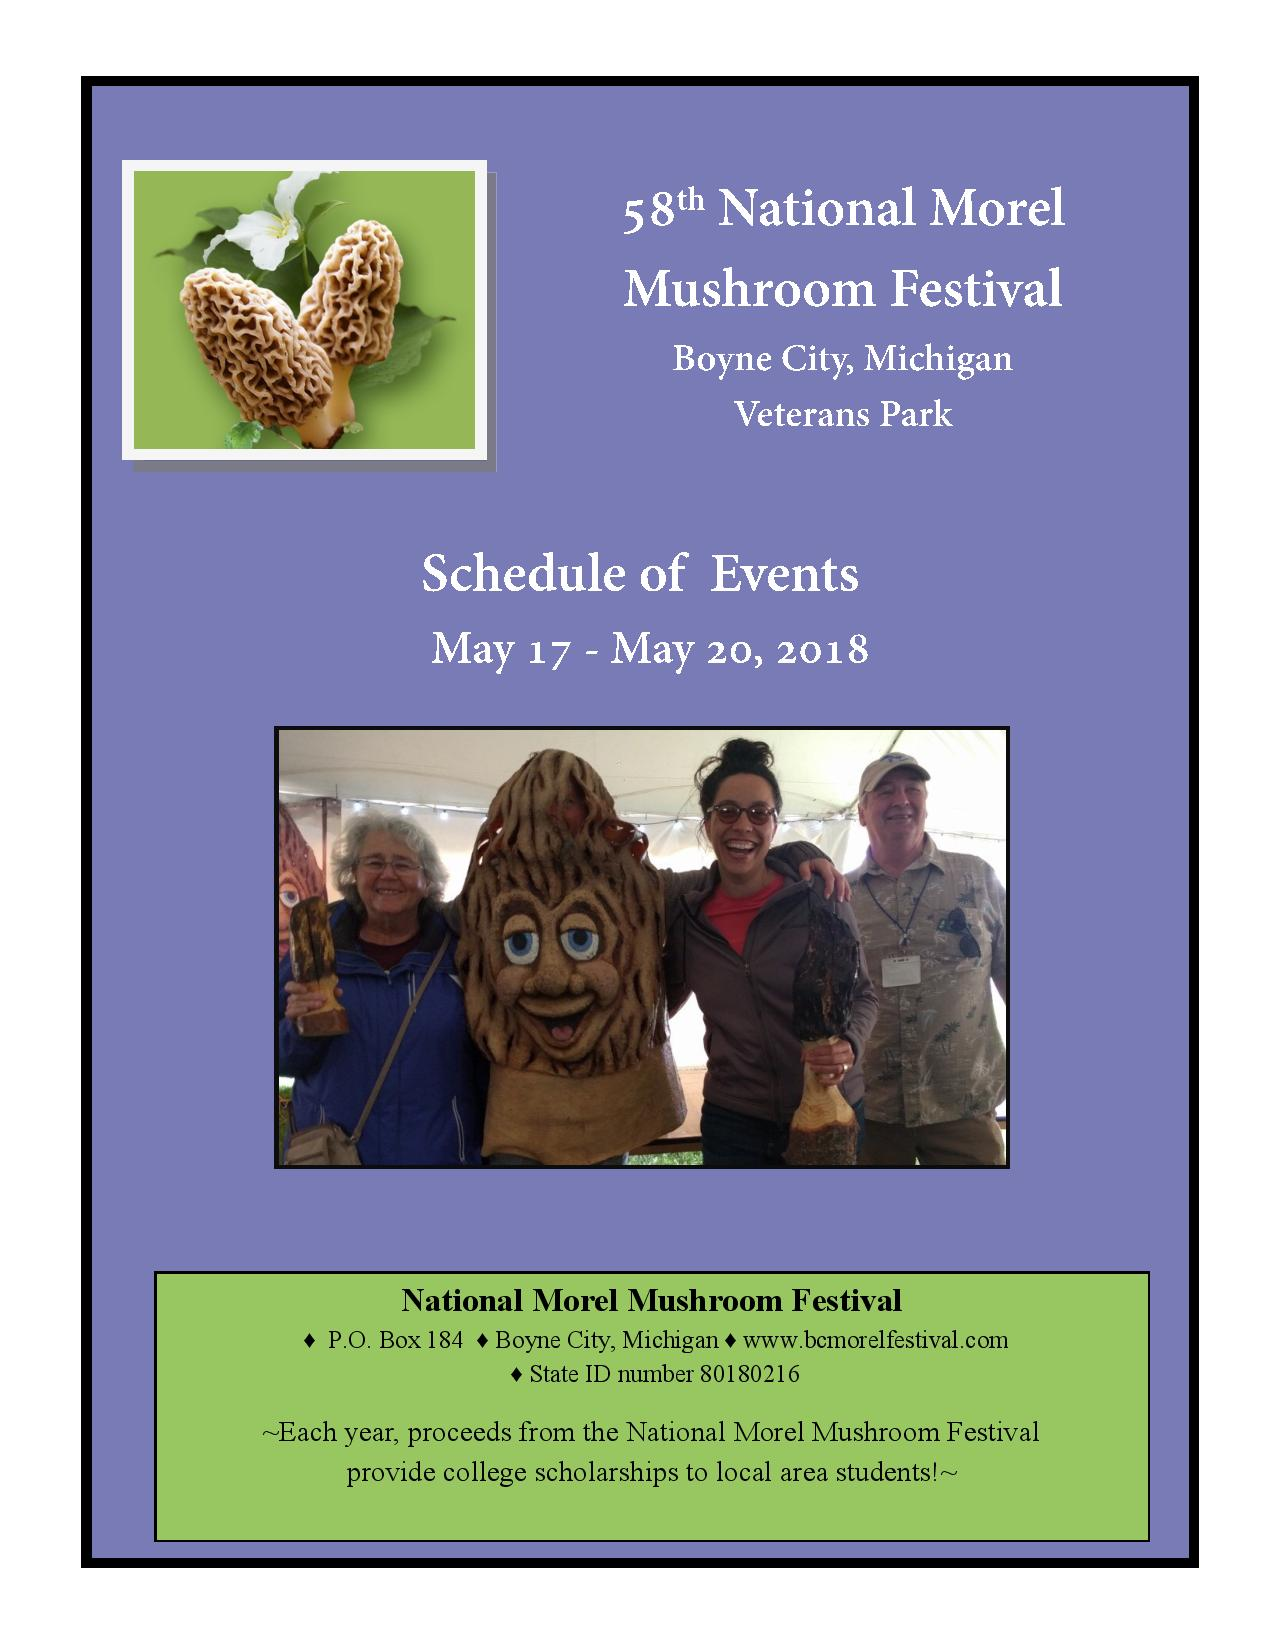 National Morel Mushroom Festival Official Site For The